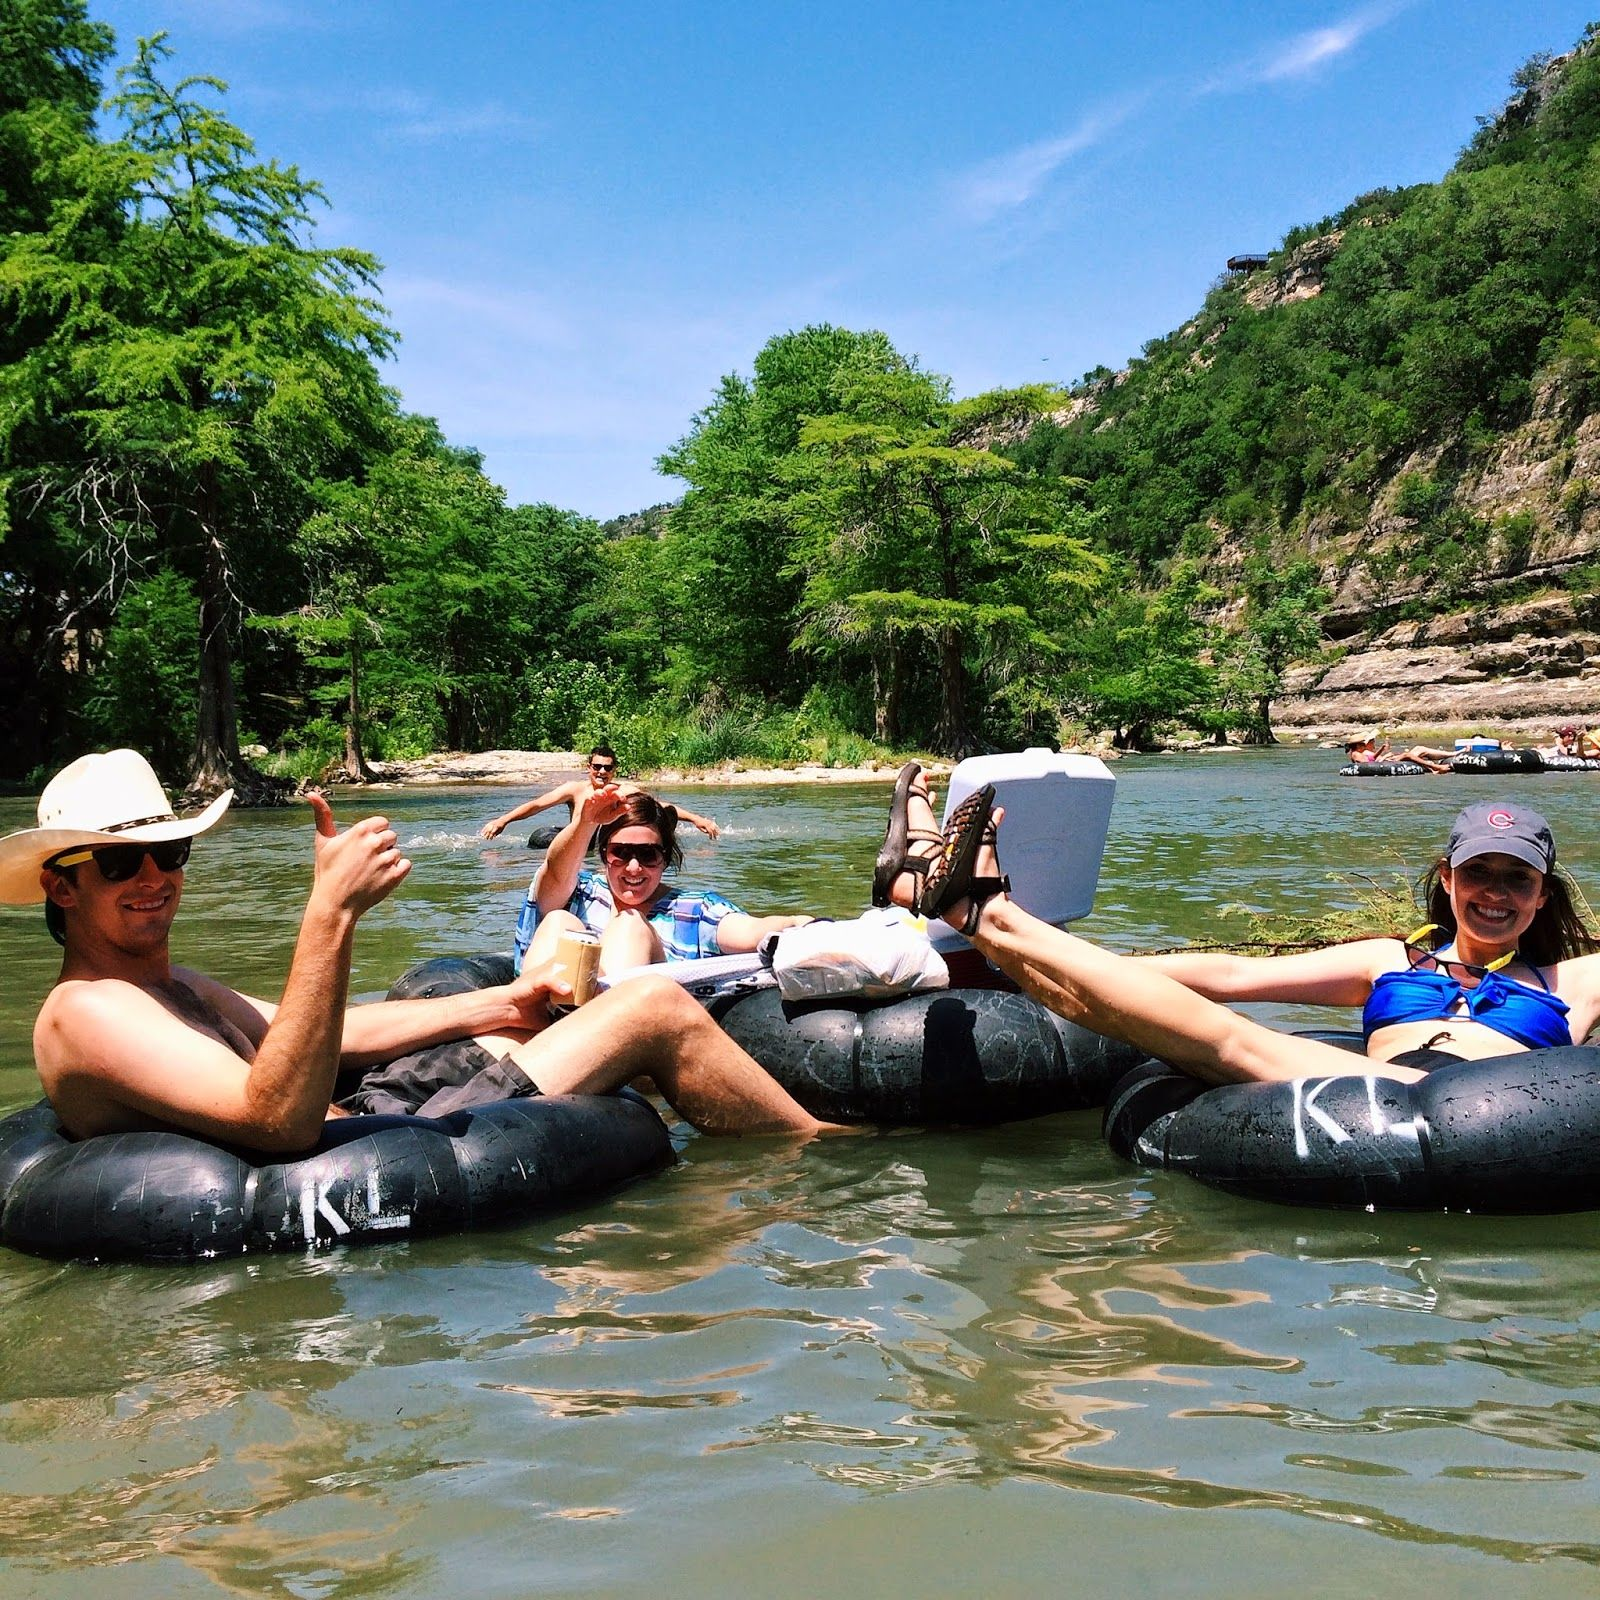 Roughing it in New Braunfels TX Texas Rivers and Texas travel